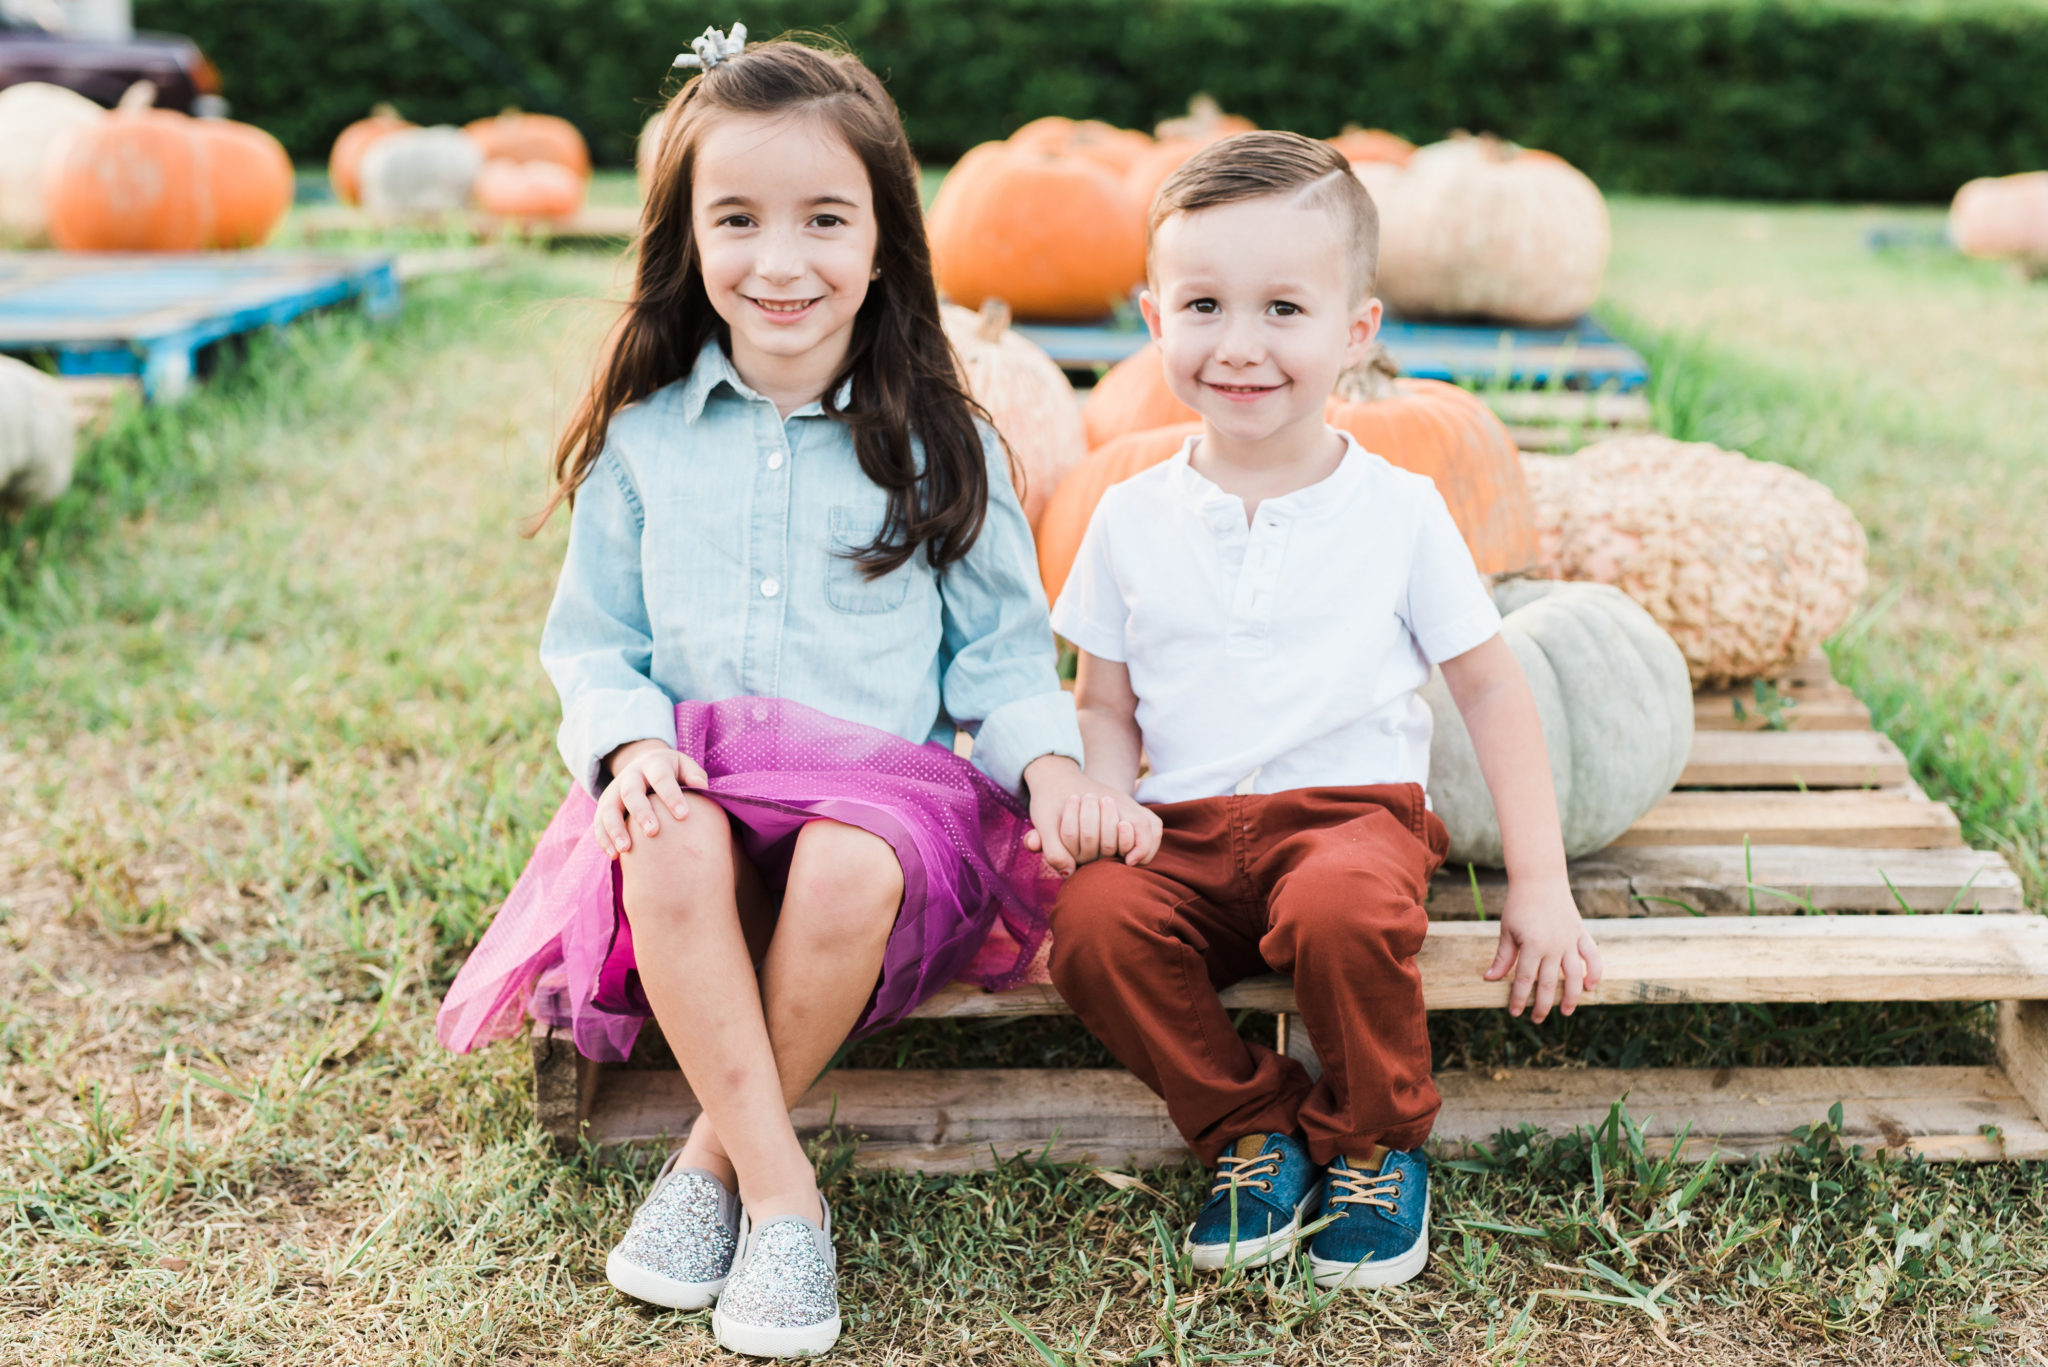 fall family mini sessions in a pumpkin patch, spring hill family photographer, hernando county wedding and portrait photographer, Tampa parenting blog mothers blog motherhood blog Florida travel blogger travel influencer healthy mom blogger spring hill florida lifestyle parenting blog best mom blog 2018